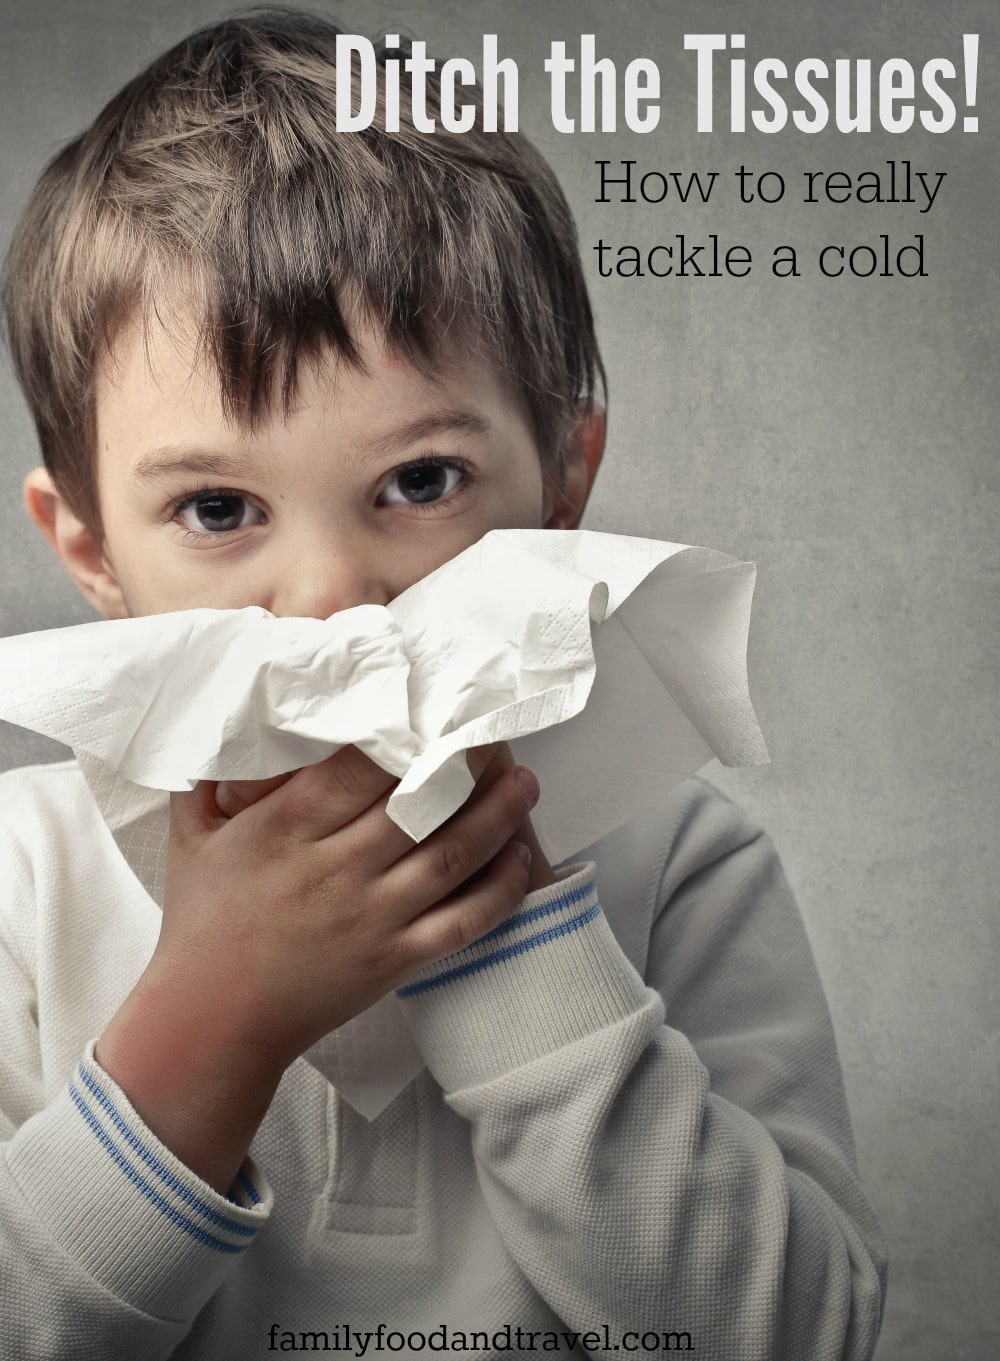 Ditch the Tissues: How to Really Tackle a Cold